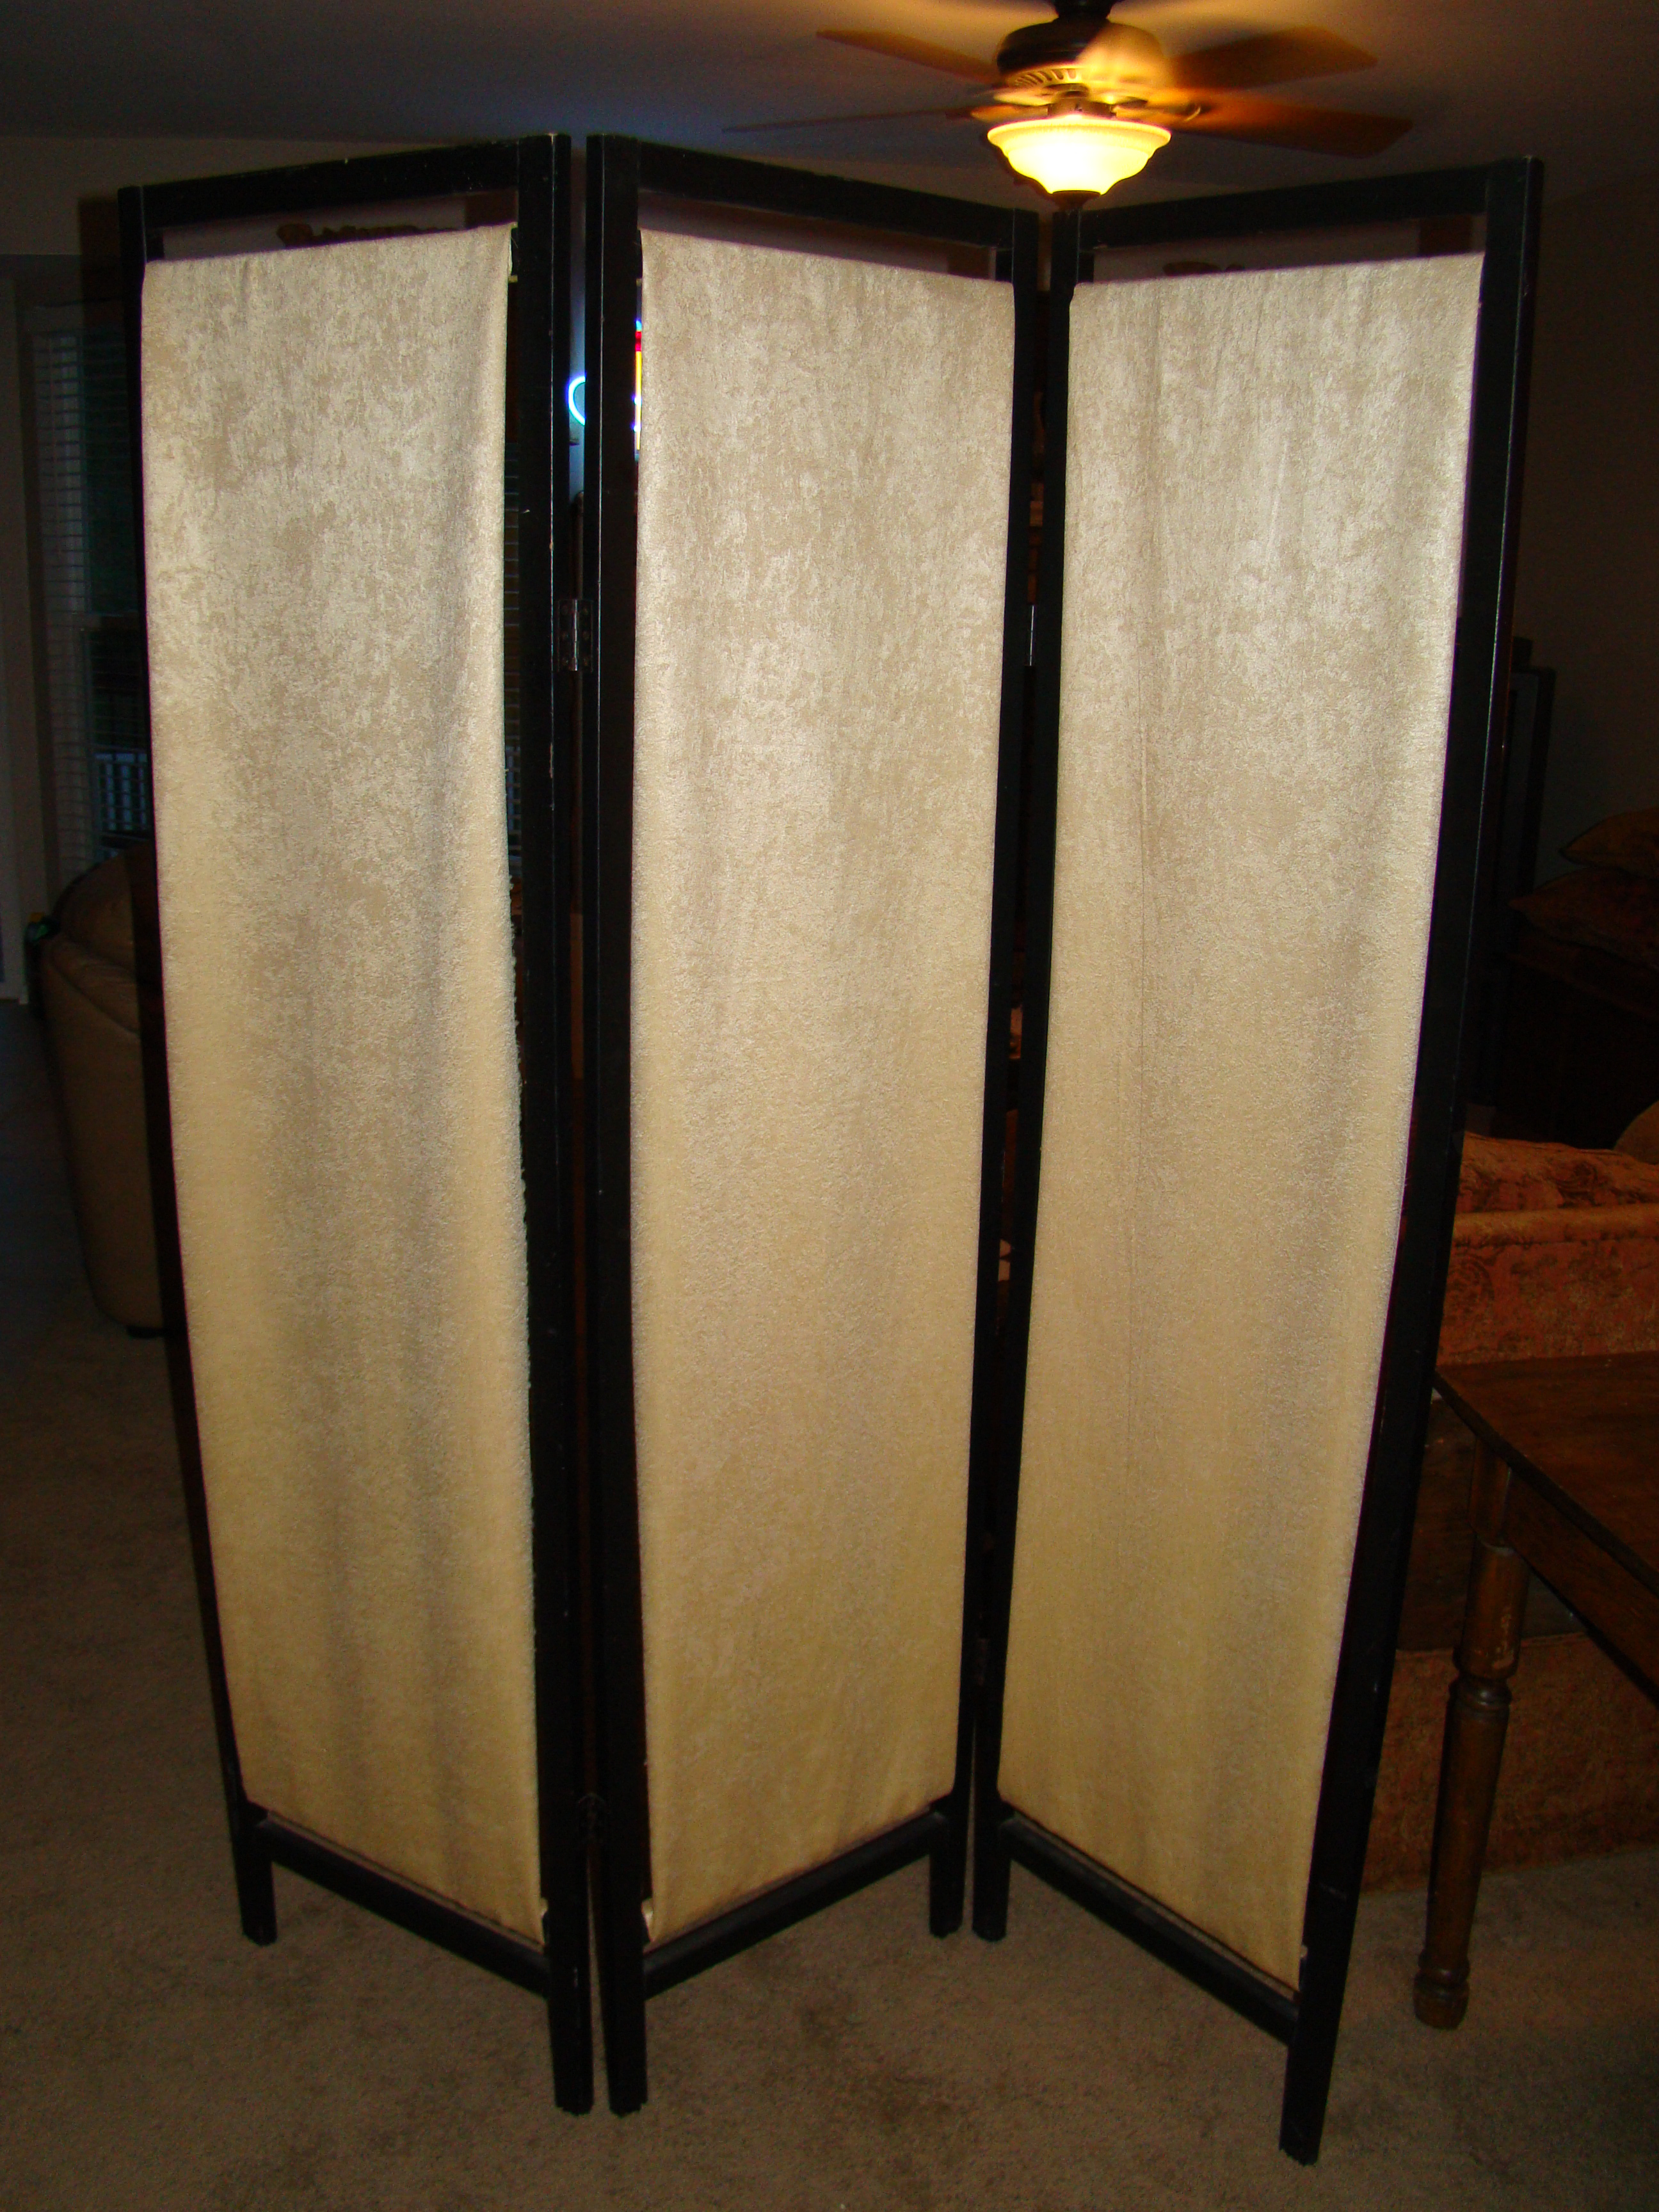 auctions moxy rants gold medal folding furniture co racine wis